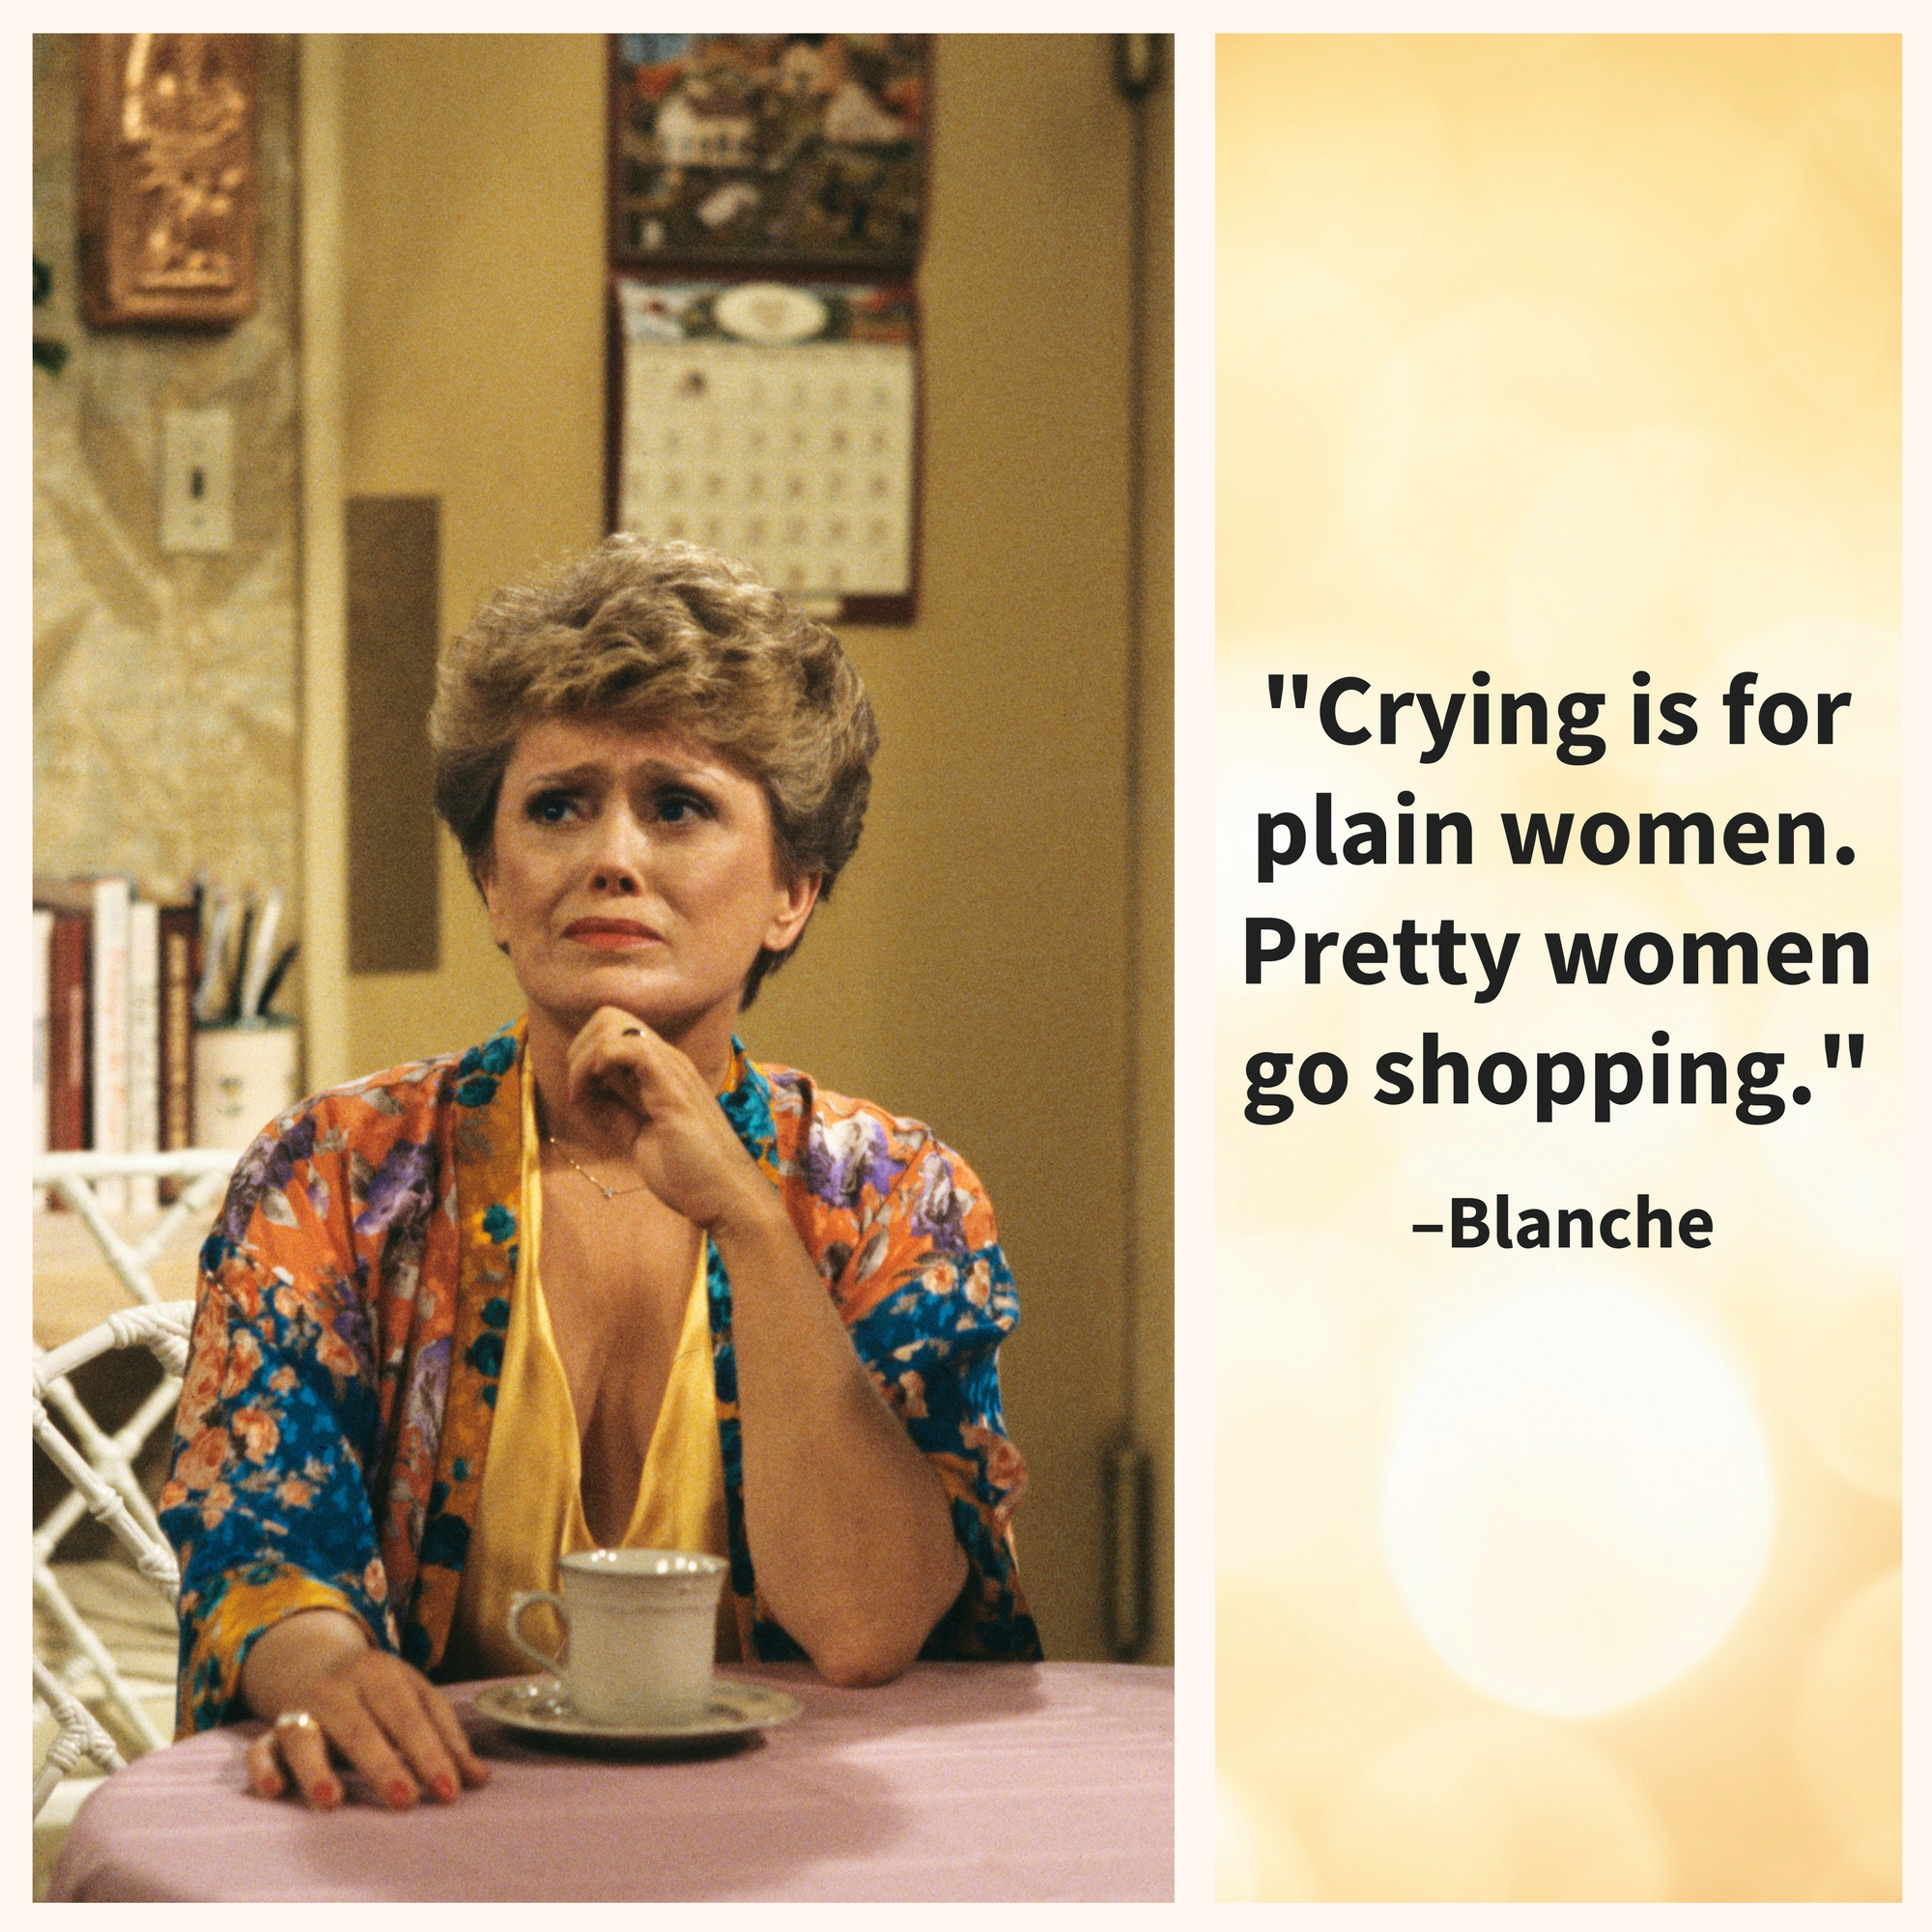 Blanche, giving us the perfect excuse to shop.